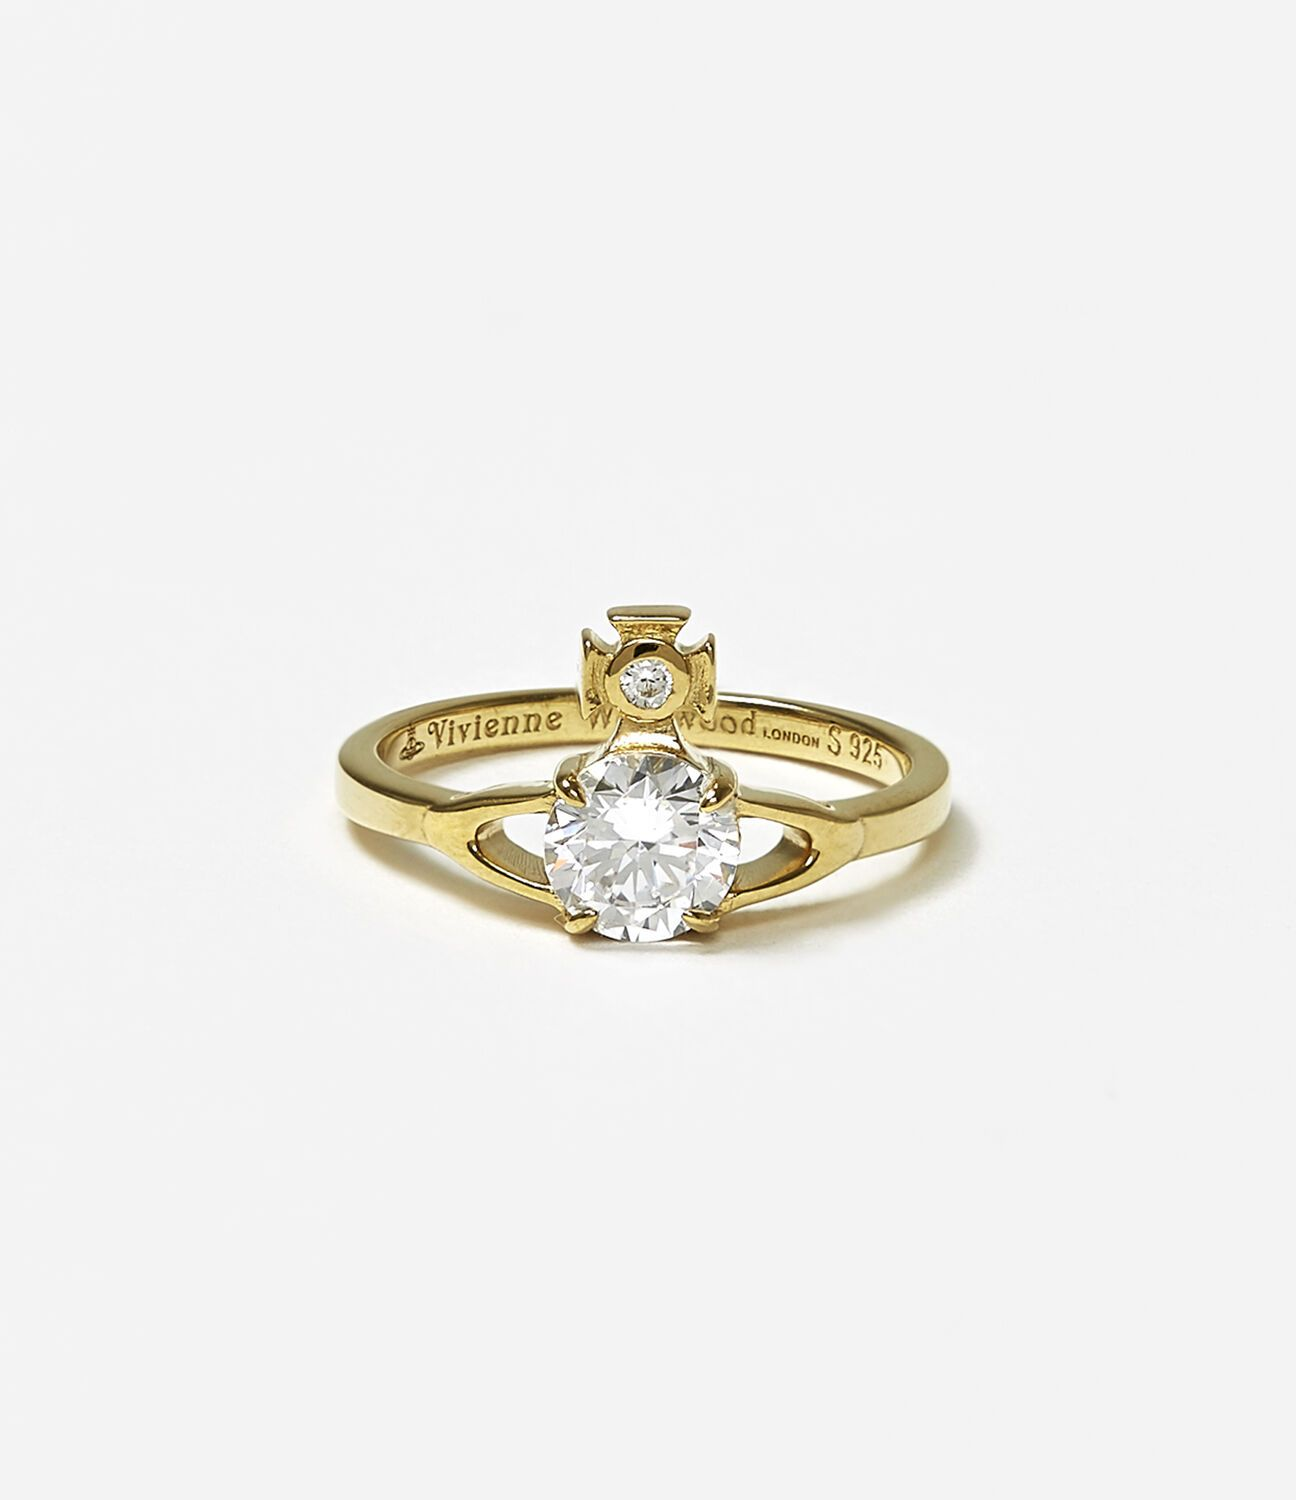 10f907fa14913 Reina petite ring in 2019 | Products | Gold rings, Gold, Rings